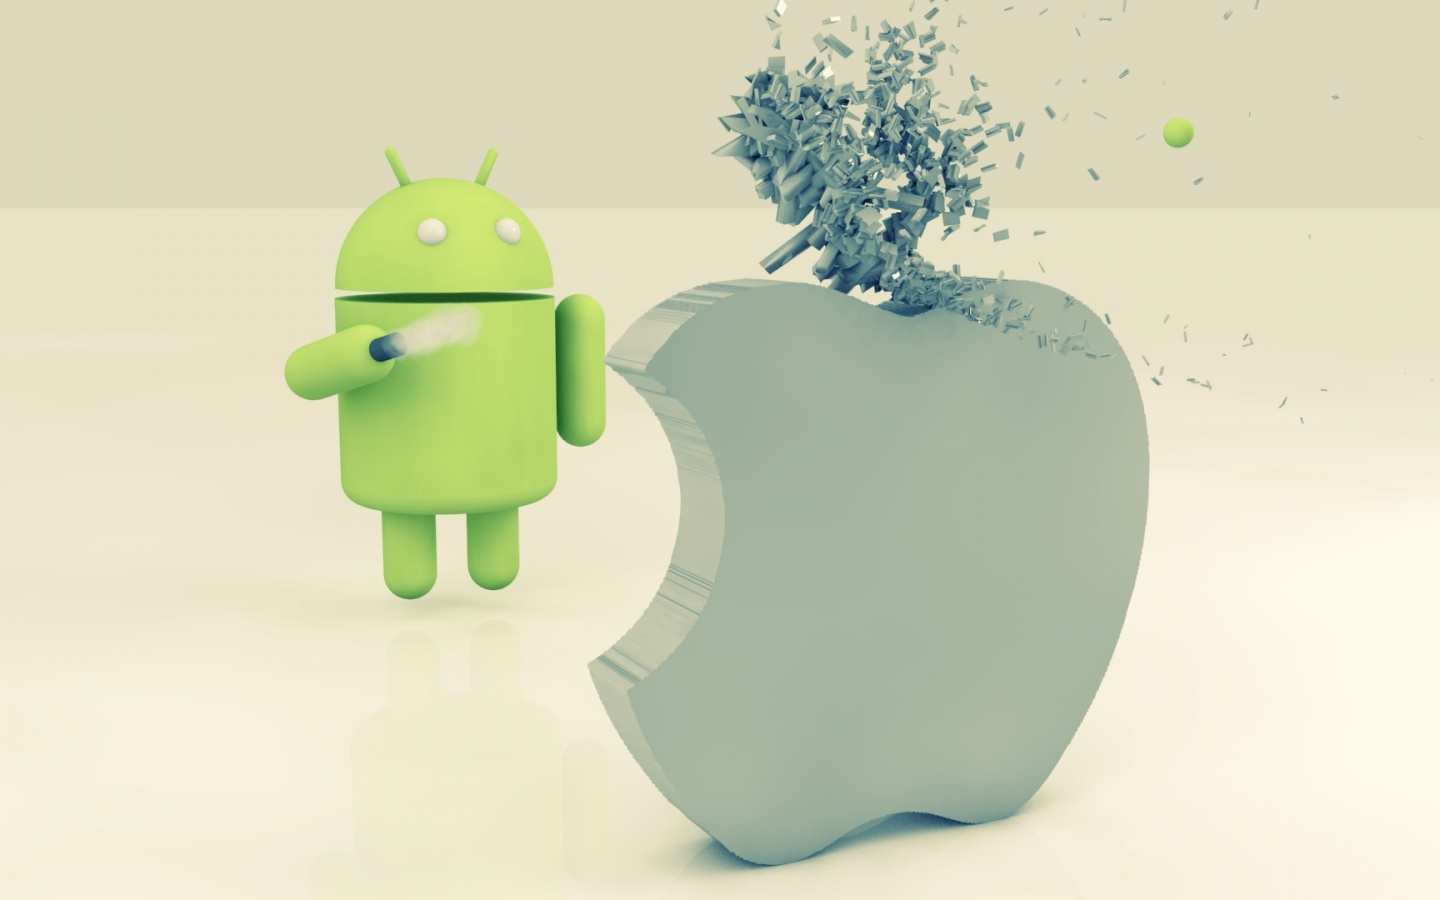 1440x900 Apple vs Android desktop PC and Mac wallpaper 1440x900